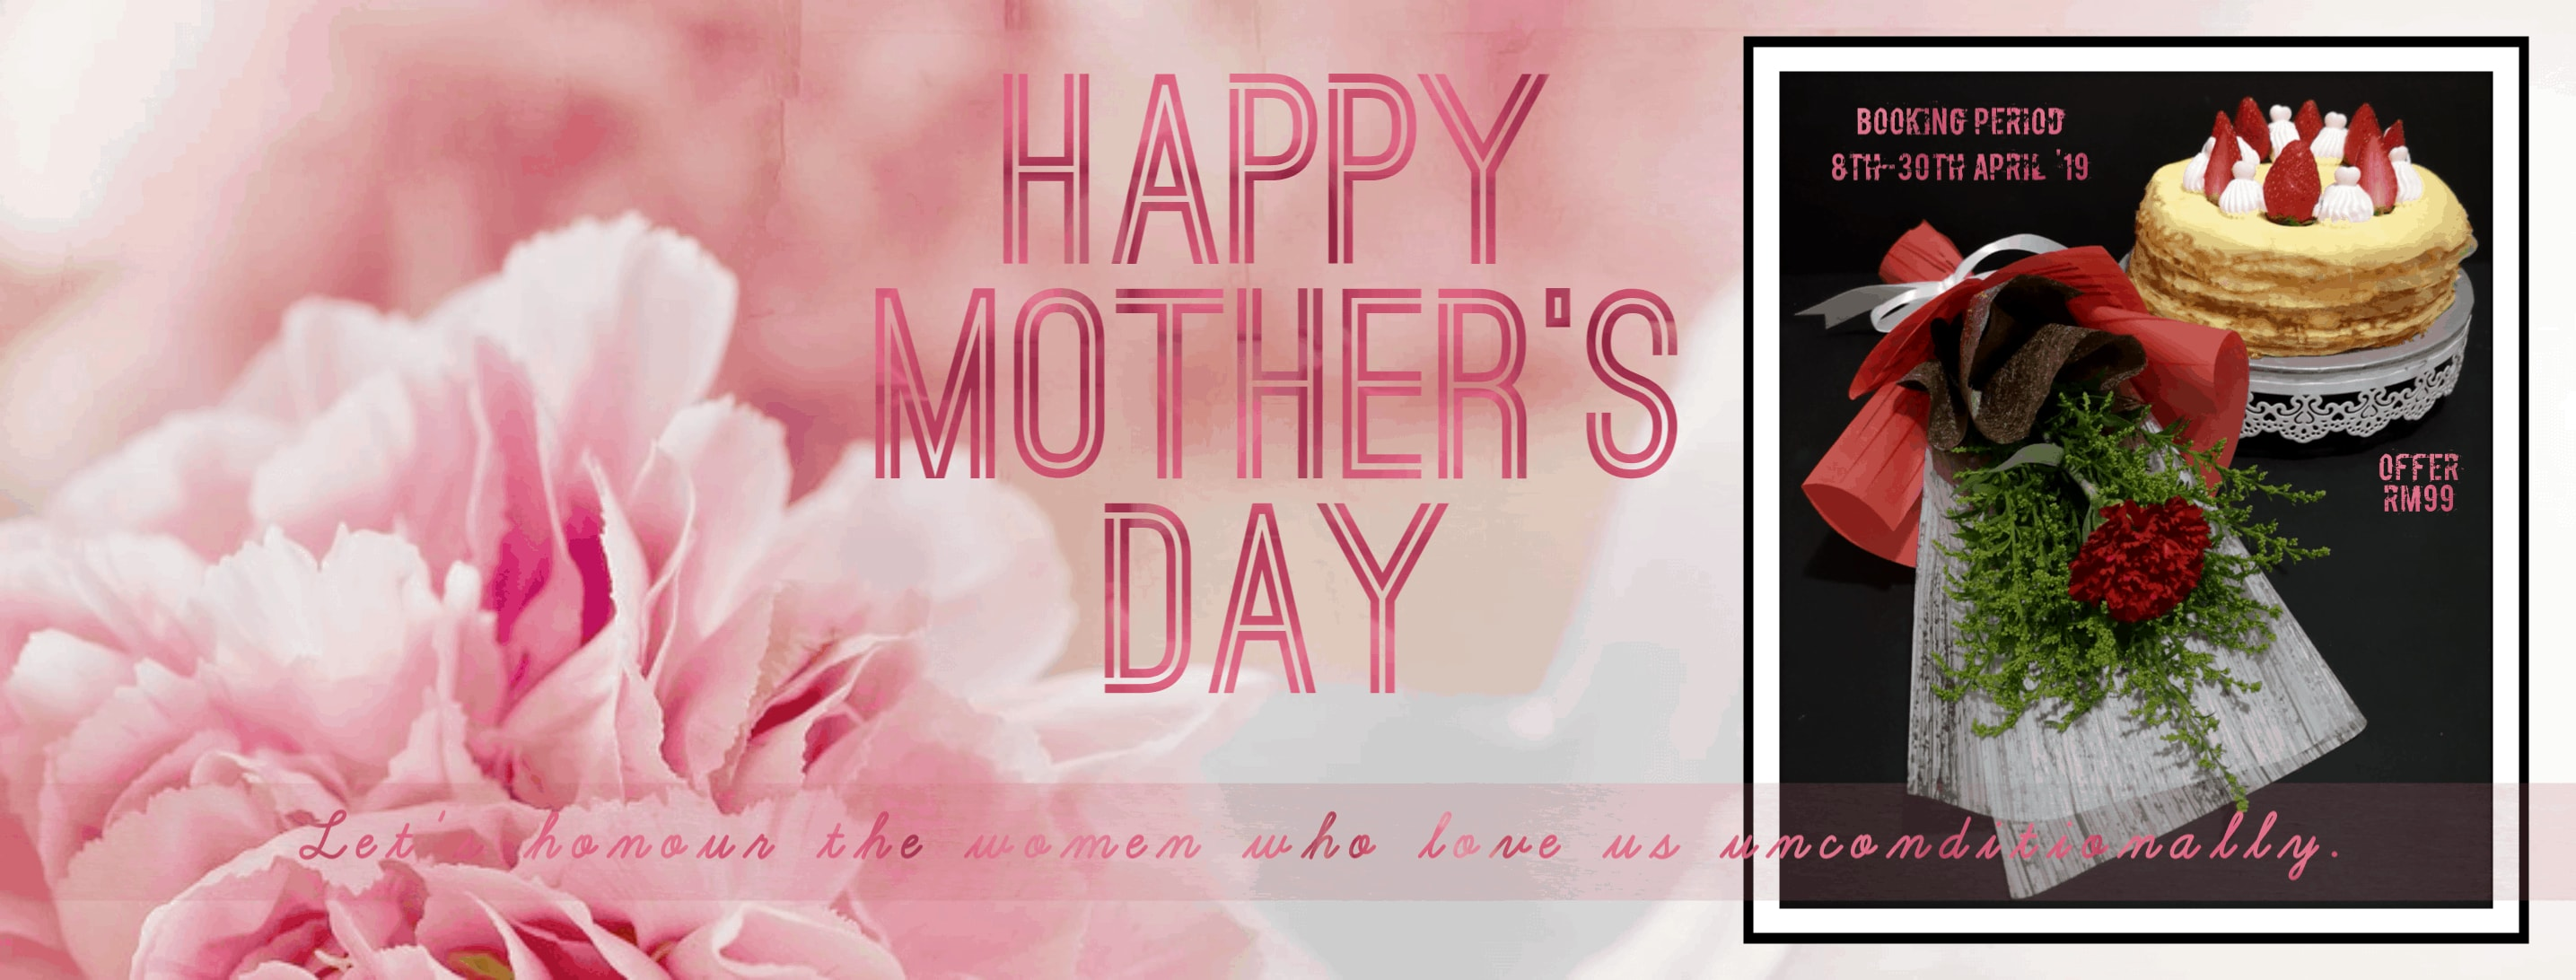 mother s day offer 2019